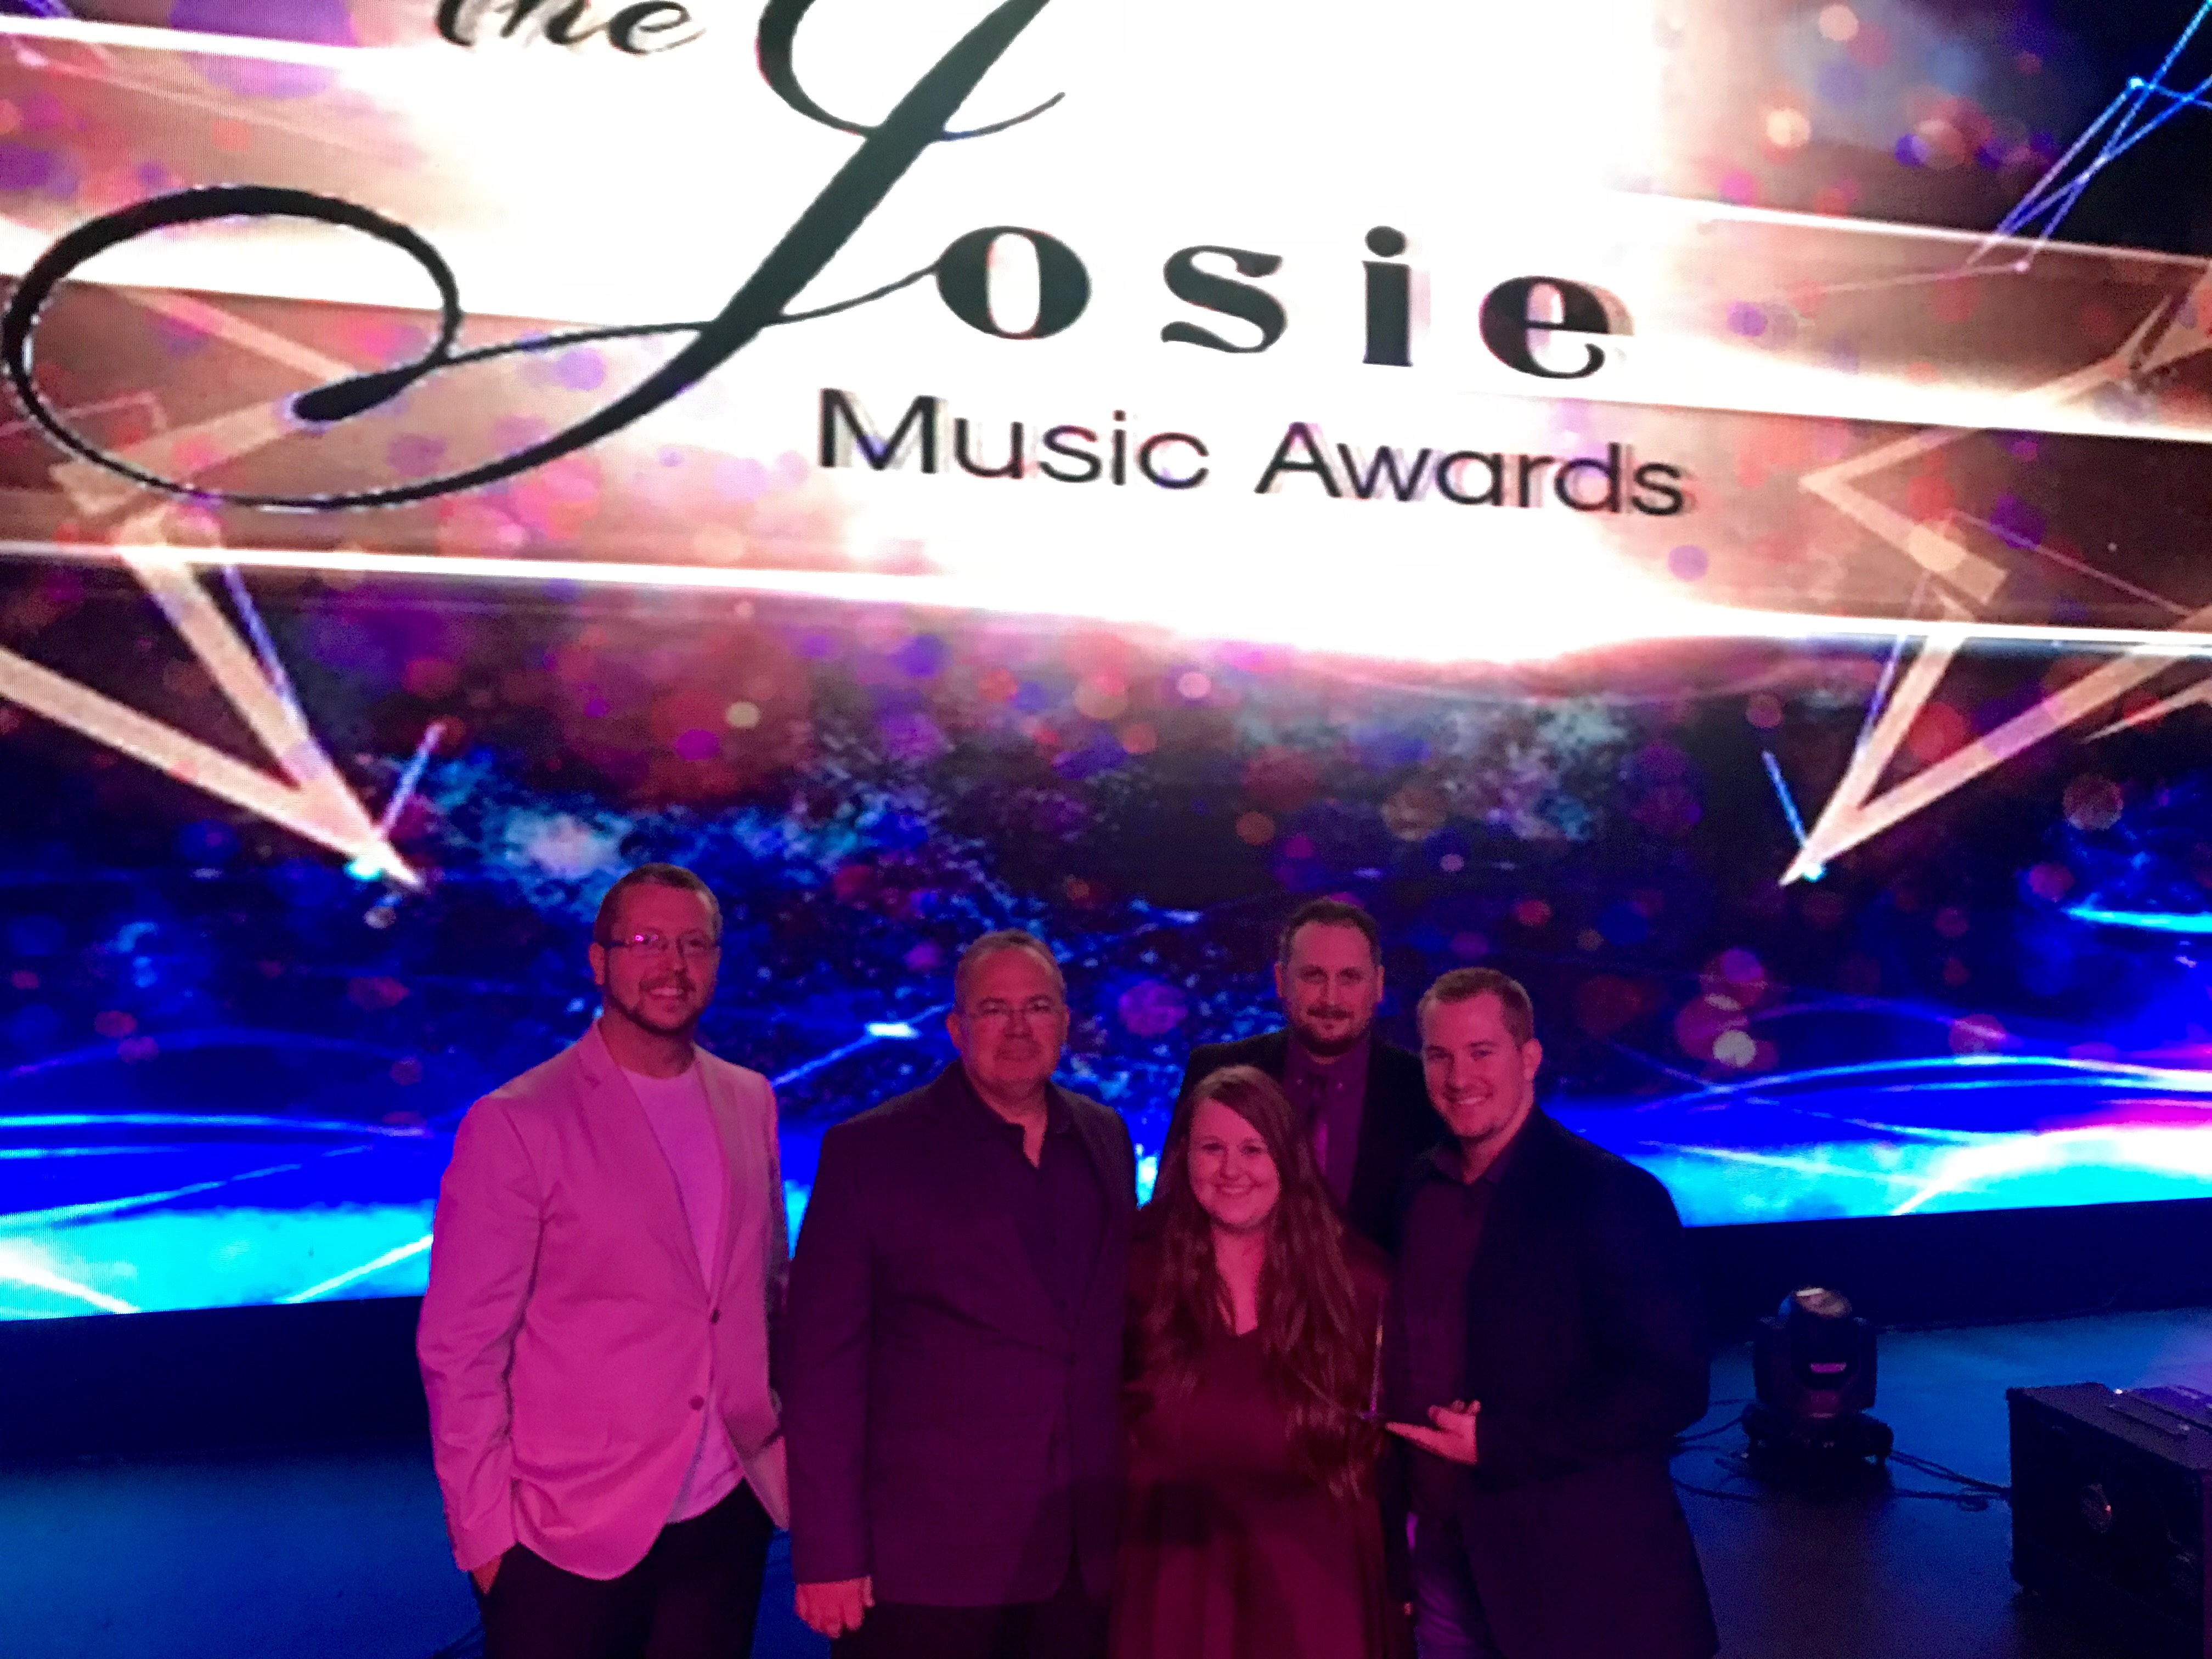 The Josie Awards